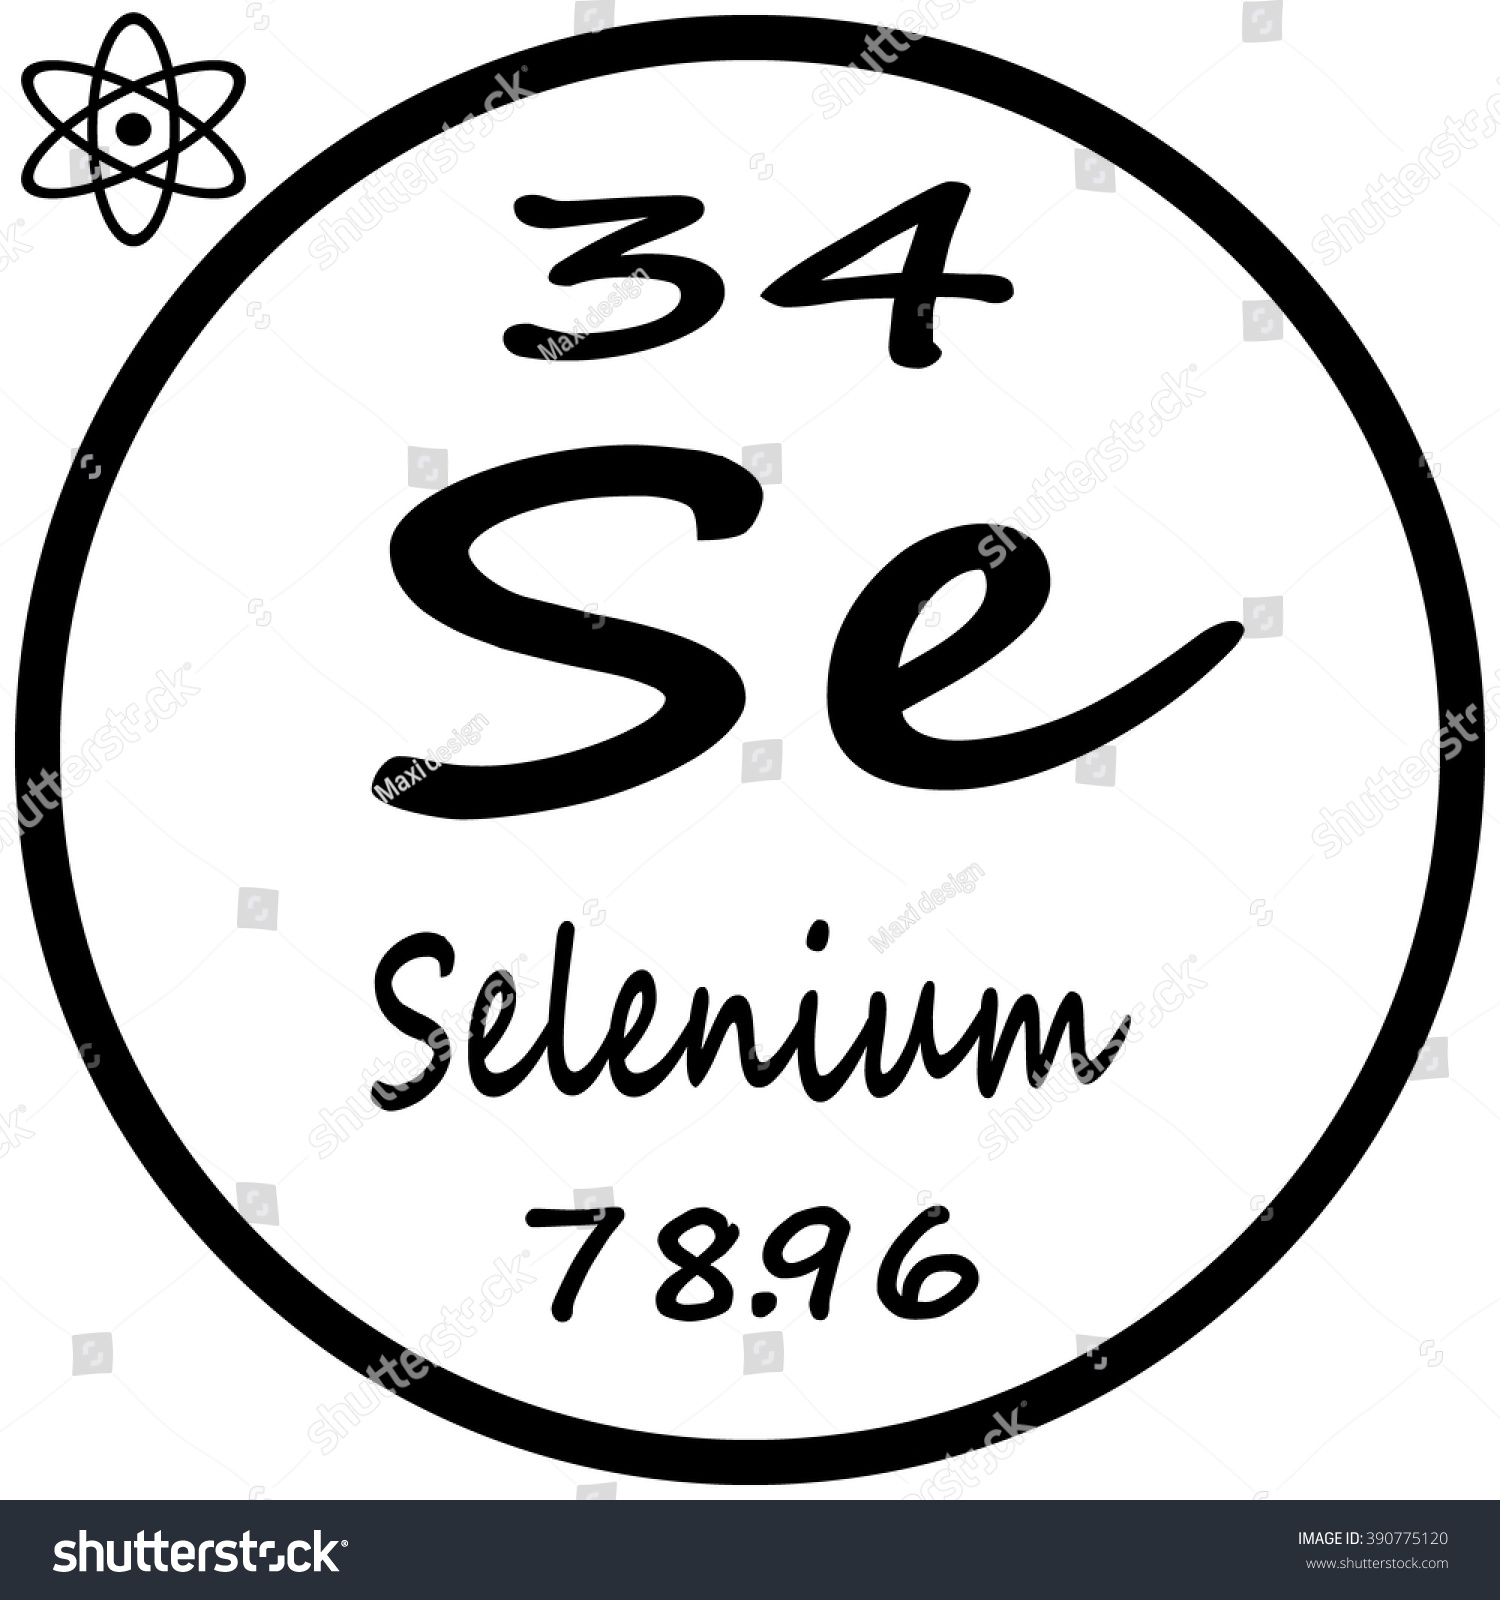 Selenium in periodic table image collections periodic table images selenium in periodic table gallery periodic table images periodic table elements selenium stock vector 390775120 shutterstock gamestrikefo Images